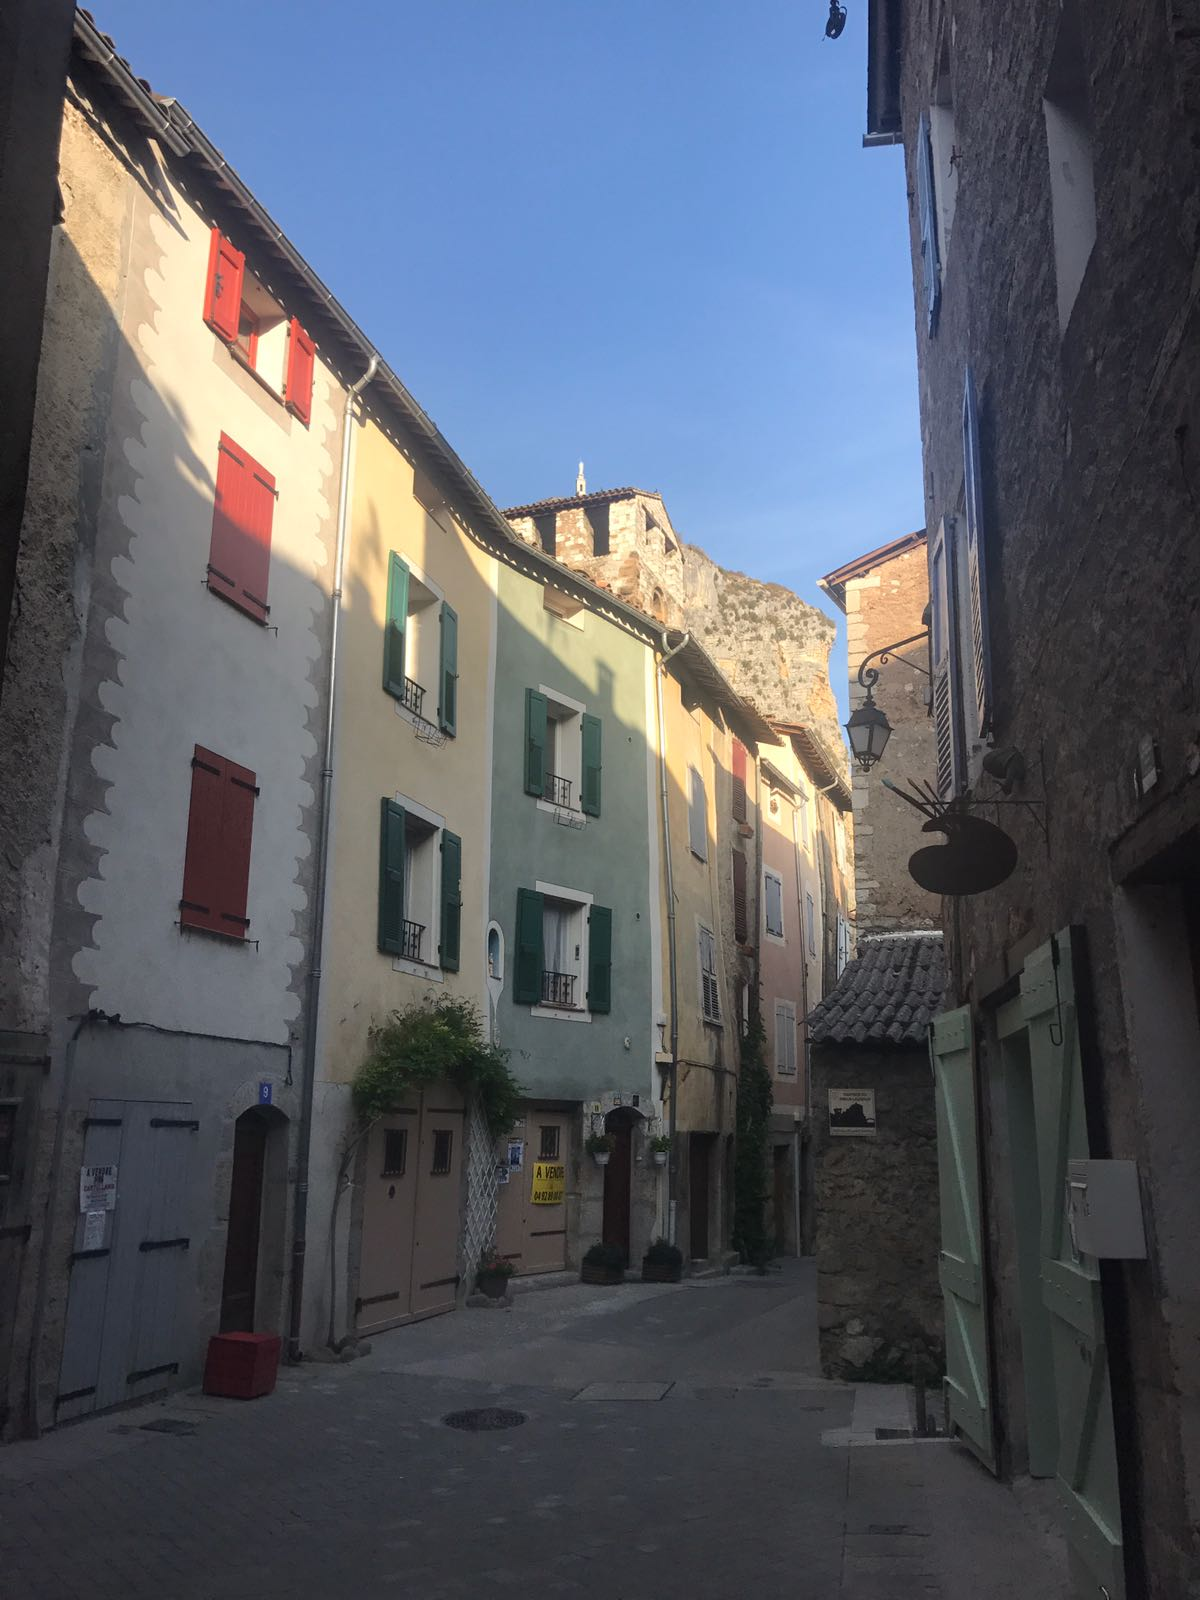 A street in Castellane, each house a different colour, with an artist's studio marked by a sign the shape of an easel